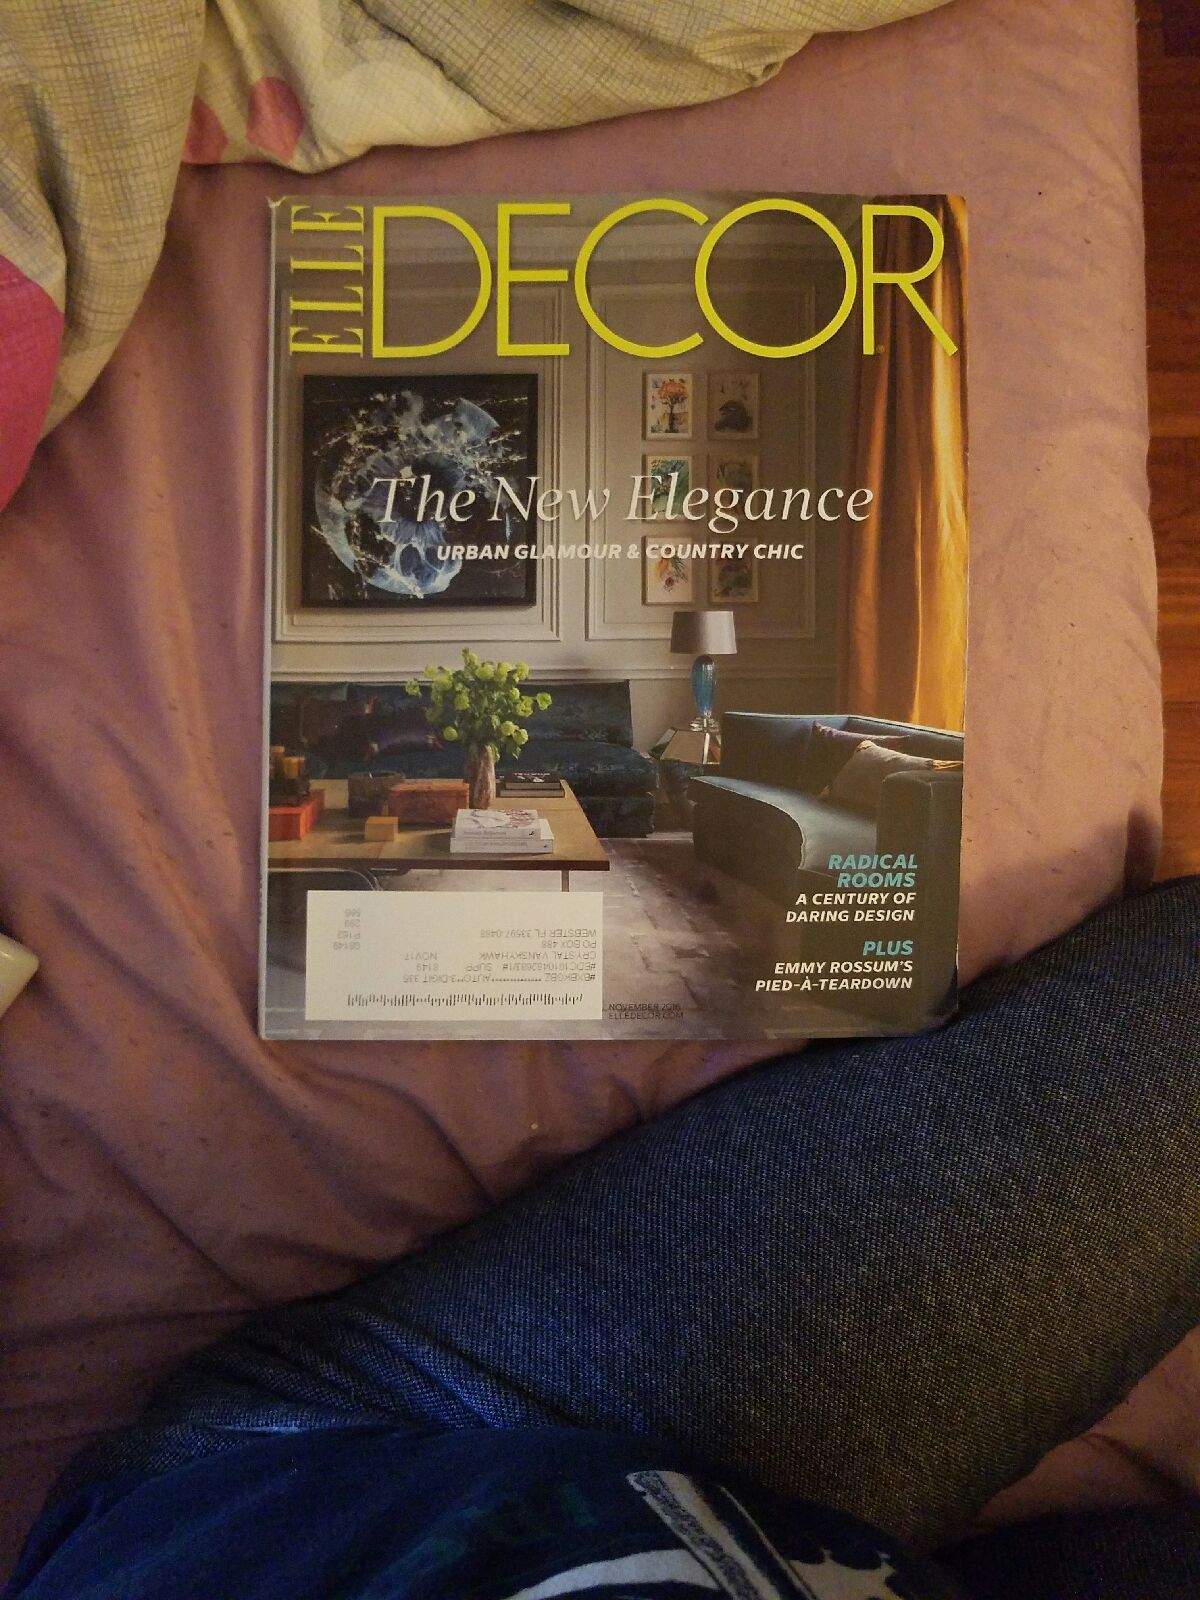 ELLE DECOR Magazine  November 2016 Decor The New Hilegance   RADICAL ROOMS  A CENTURY OF  DARING DESIGN   PLUS EMMY ROSSUM'S  PIED-A-TEARDOWN  The New Elegance  URBAN GLAMOUR  & COUNTRY CHIC   https://nemb.ly/p/Hyf9wUy_g Happily published via Nembol